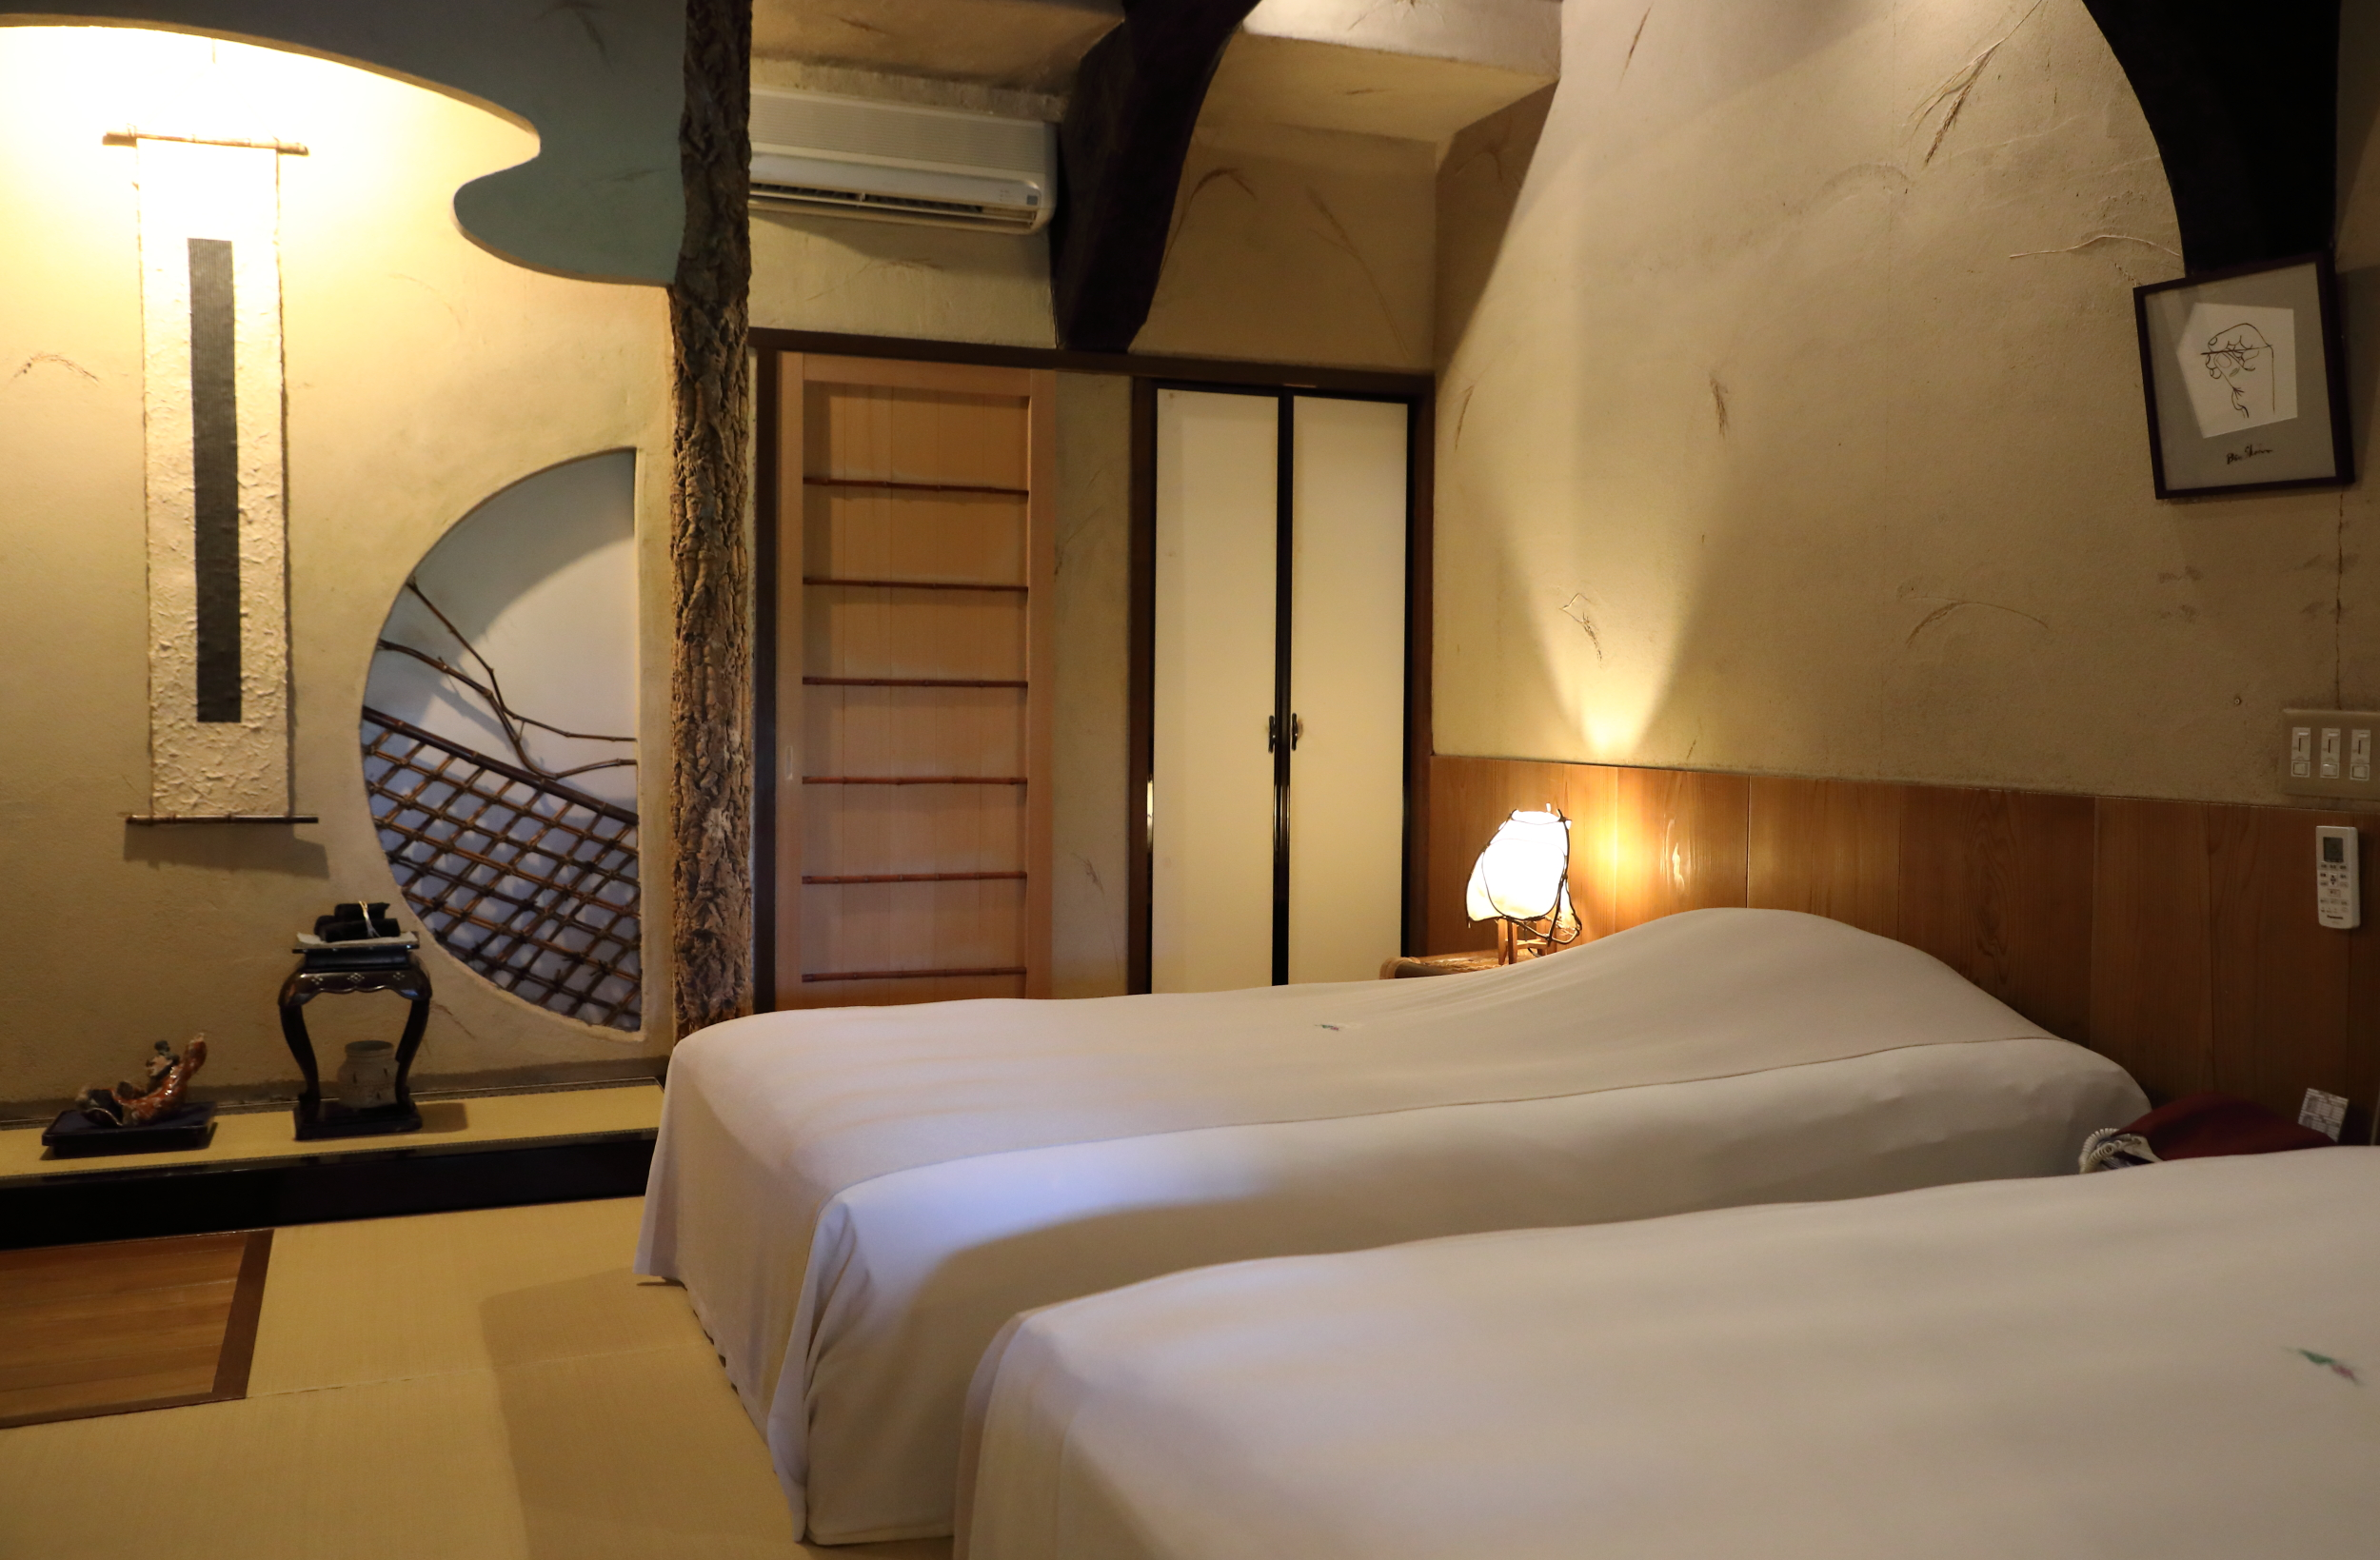 All rooms in the inn have two large twin beds, a separate sitting area, and their own bathrooms.